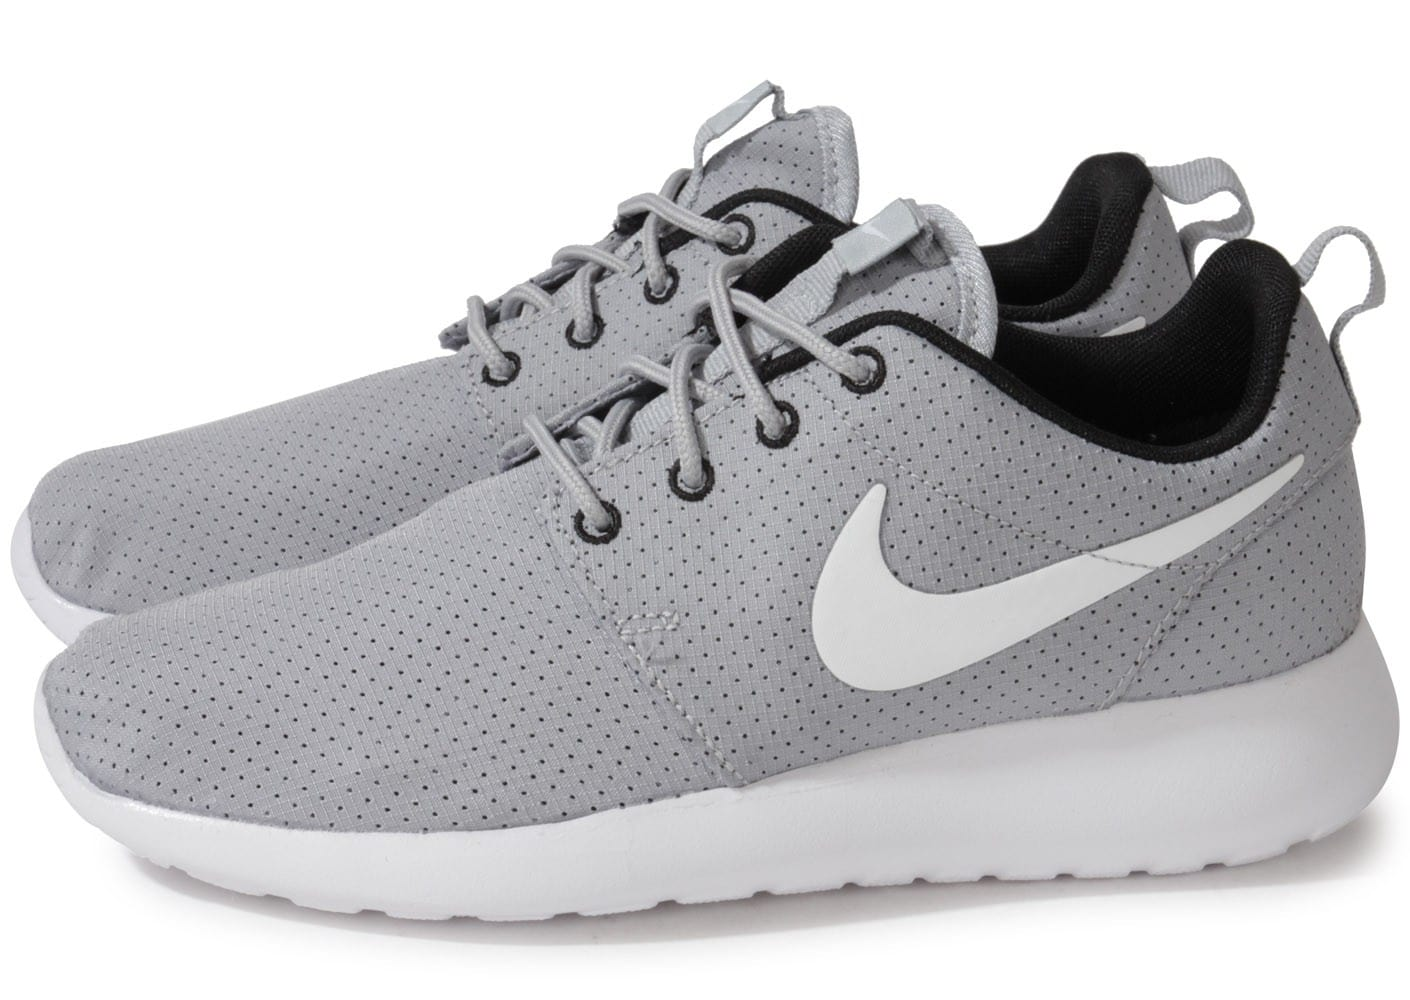 nike roshe run grise chaussures chaussures chausport. Black Bedroom Furniture Sets. Home Design Ideas